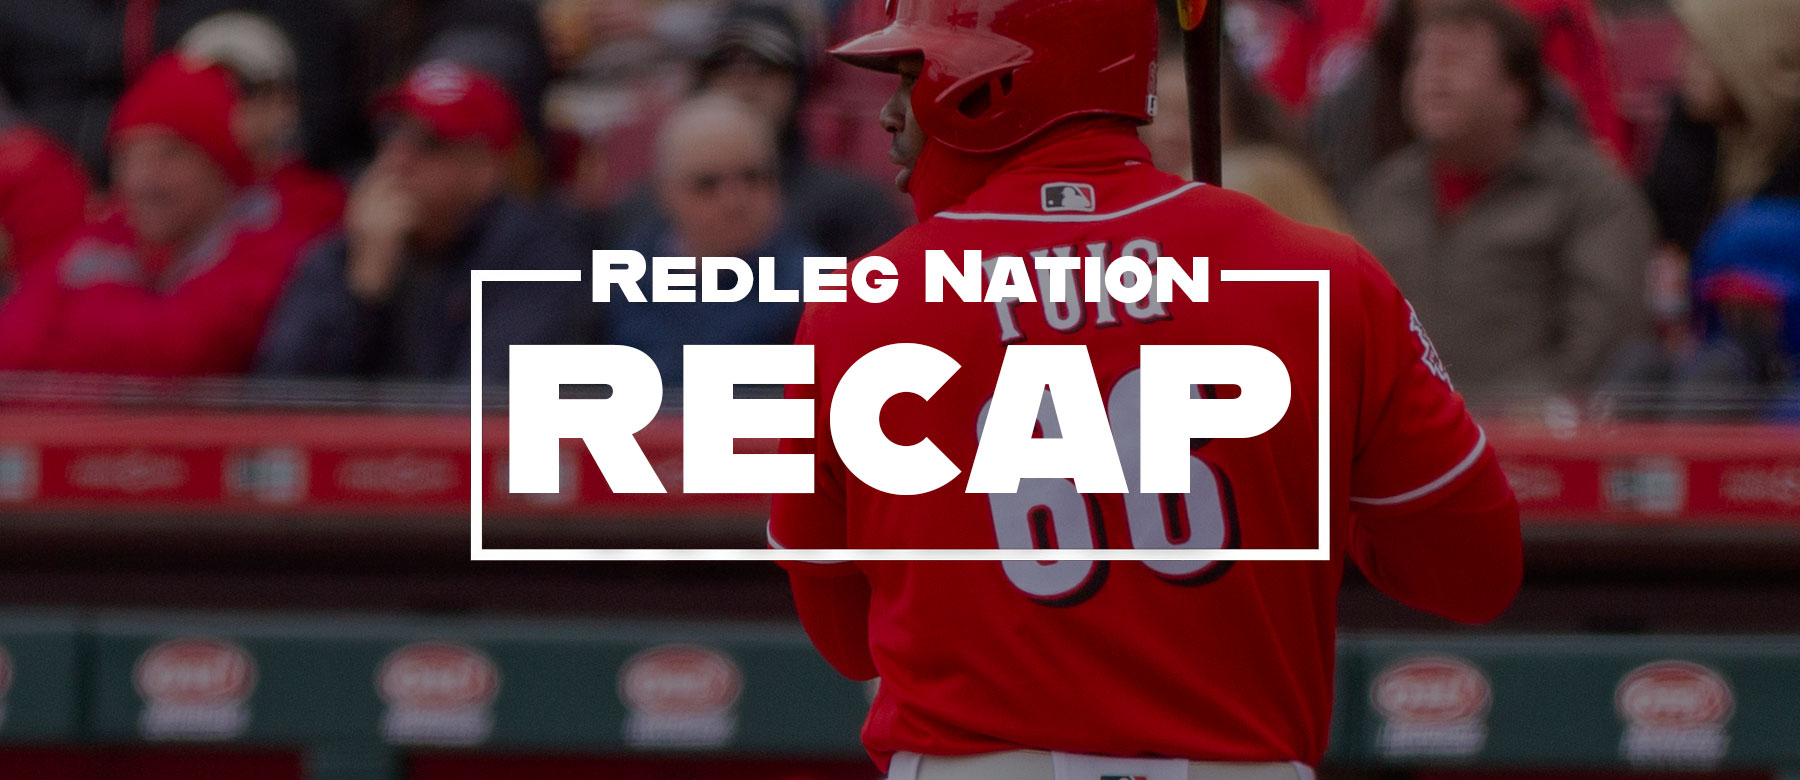 Reds Recap: More offensive struggles for Cincinnati in a loss